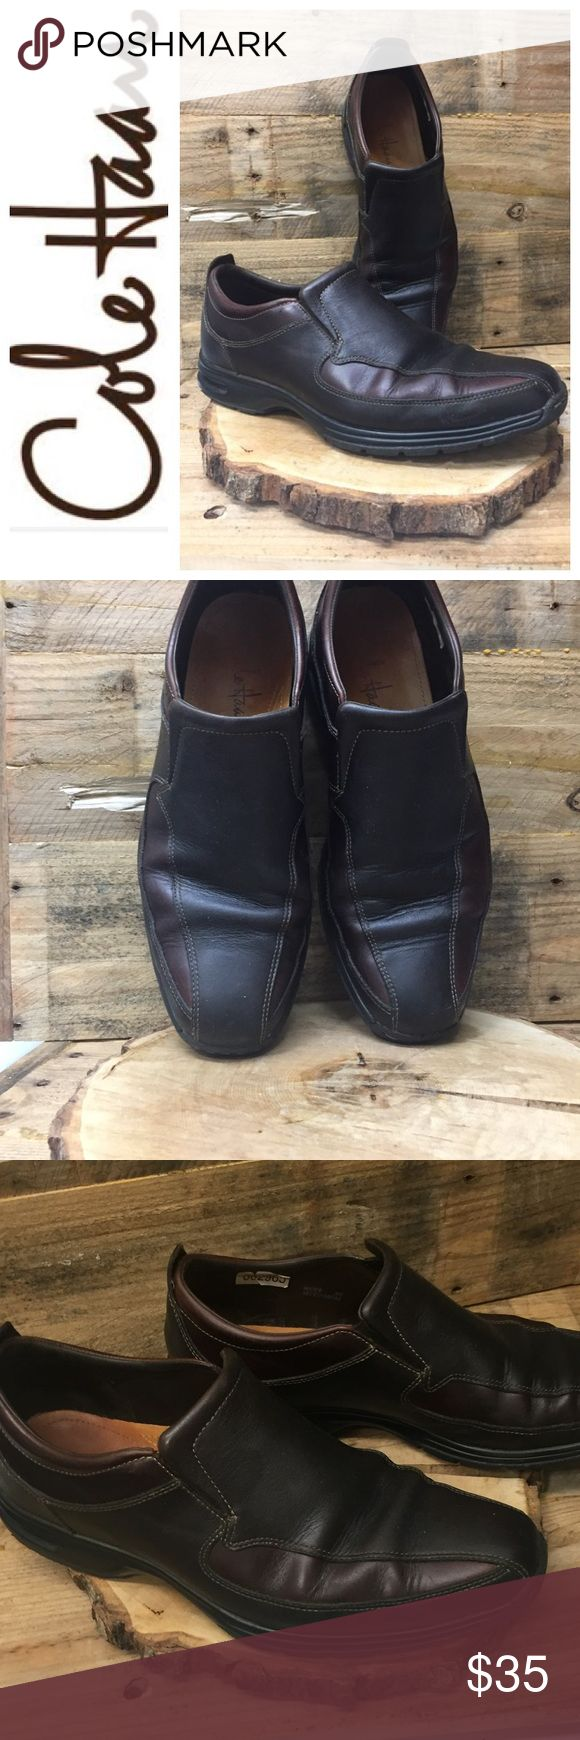 Men's Cole Haan Brown on Brown Loafers Shoes 9 Great pair of men's brown on brown Cole Haan slip on Loafers. Nike air cushioned soles , great to work in.  Preowned and clean. Check out my closet to save on bundles. Reasonable offers accepted. Cole Haan Shoes Loafers & Slip-Ons